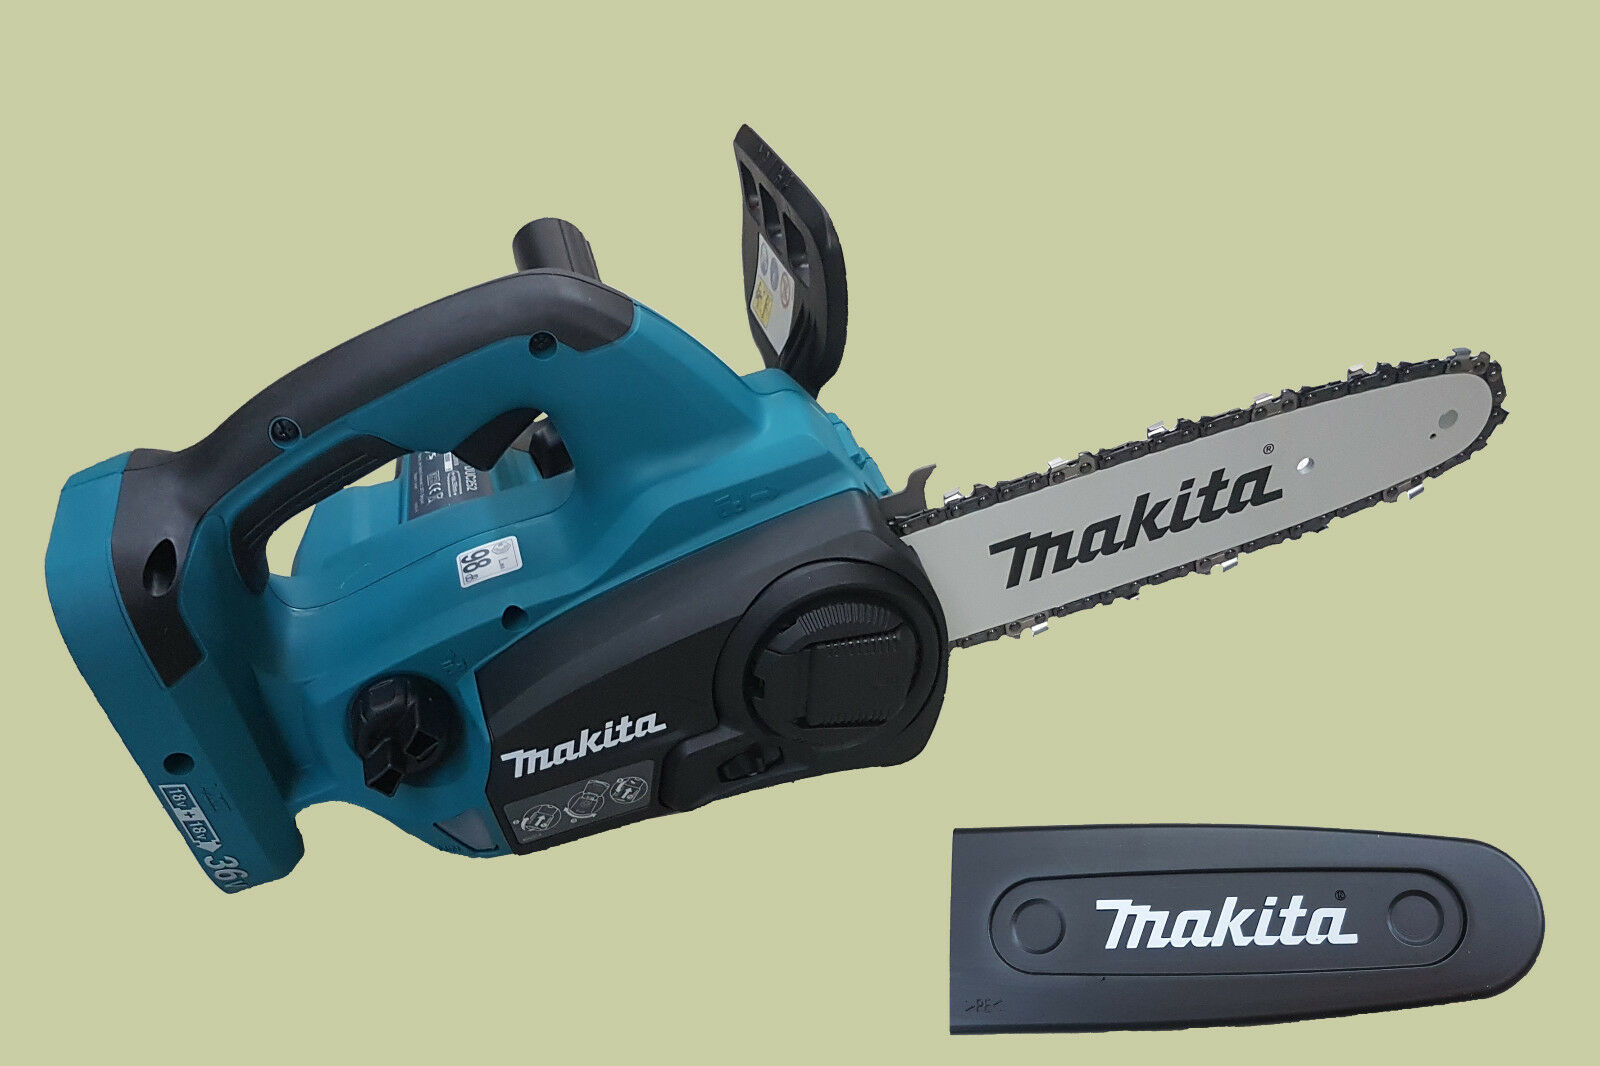 Makita top handle akku kettensäge duc z solo version